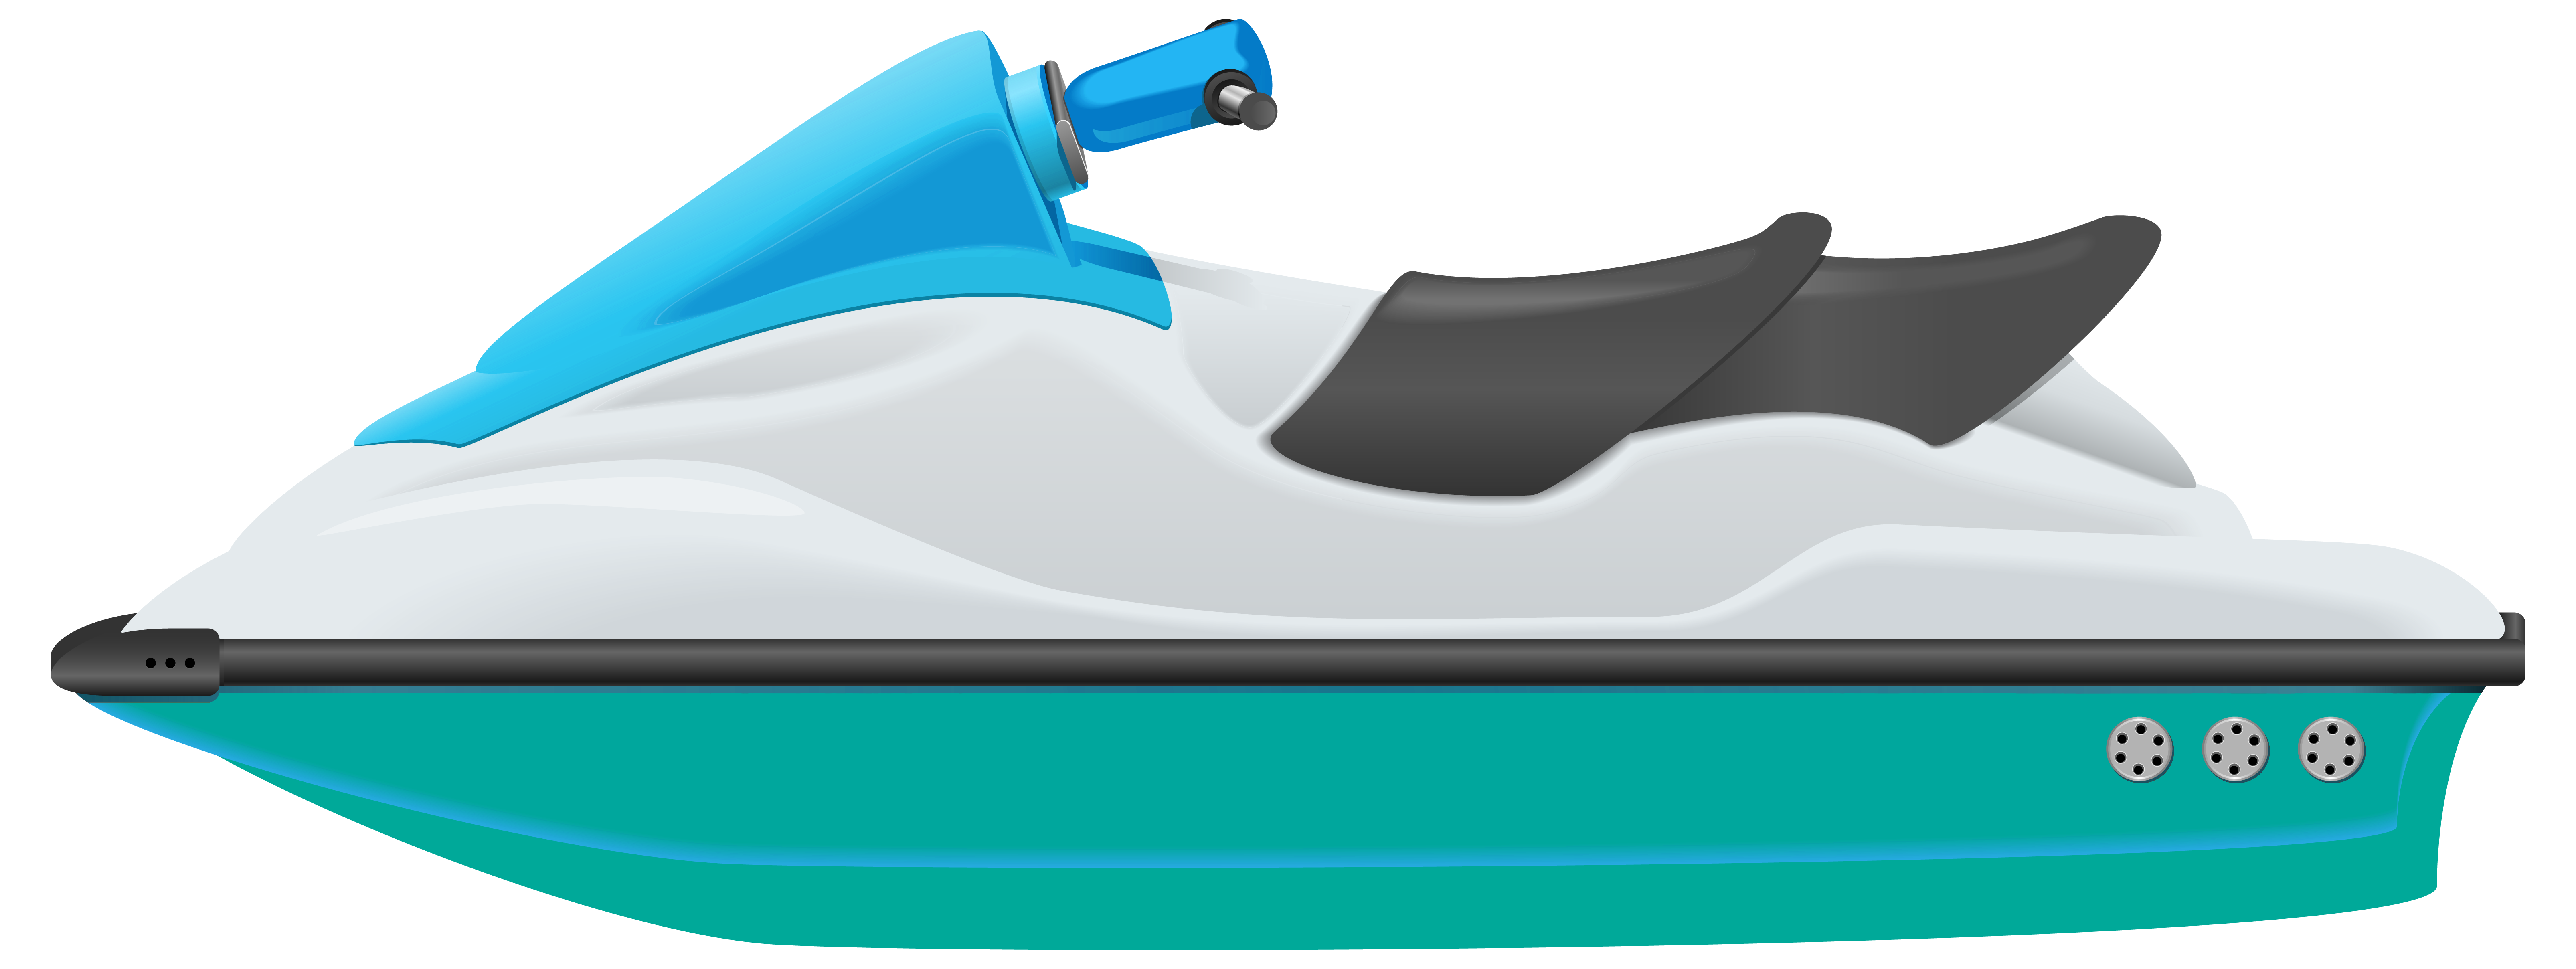 Jet ski png image. Boat clipart watercraft